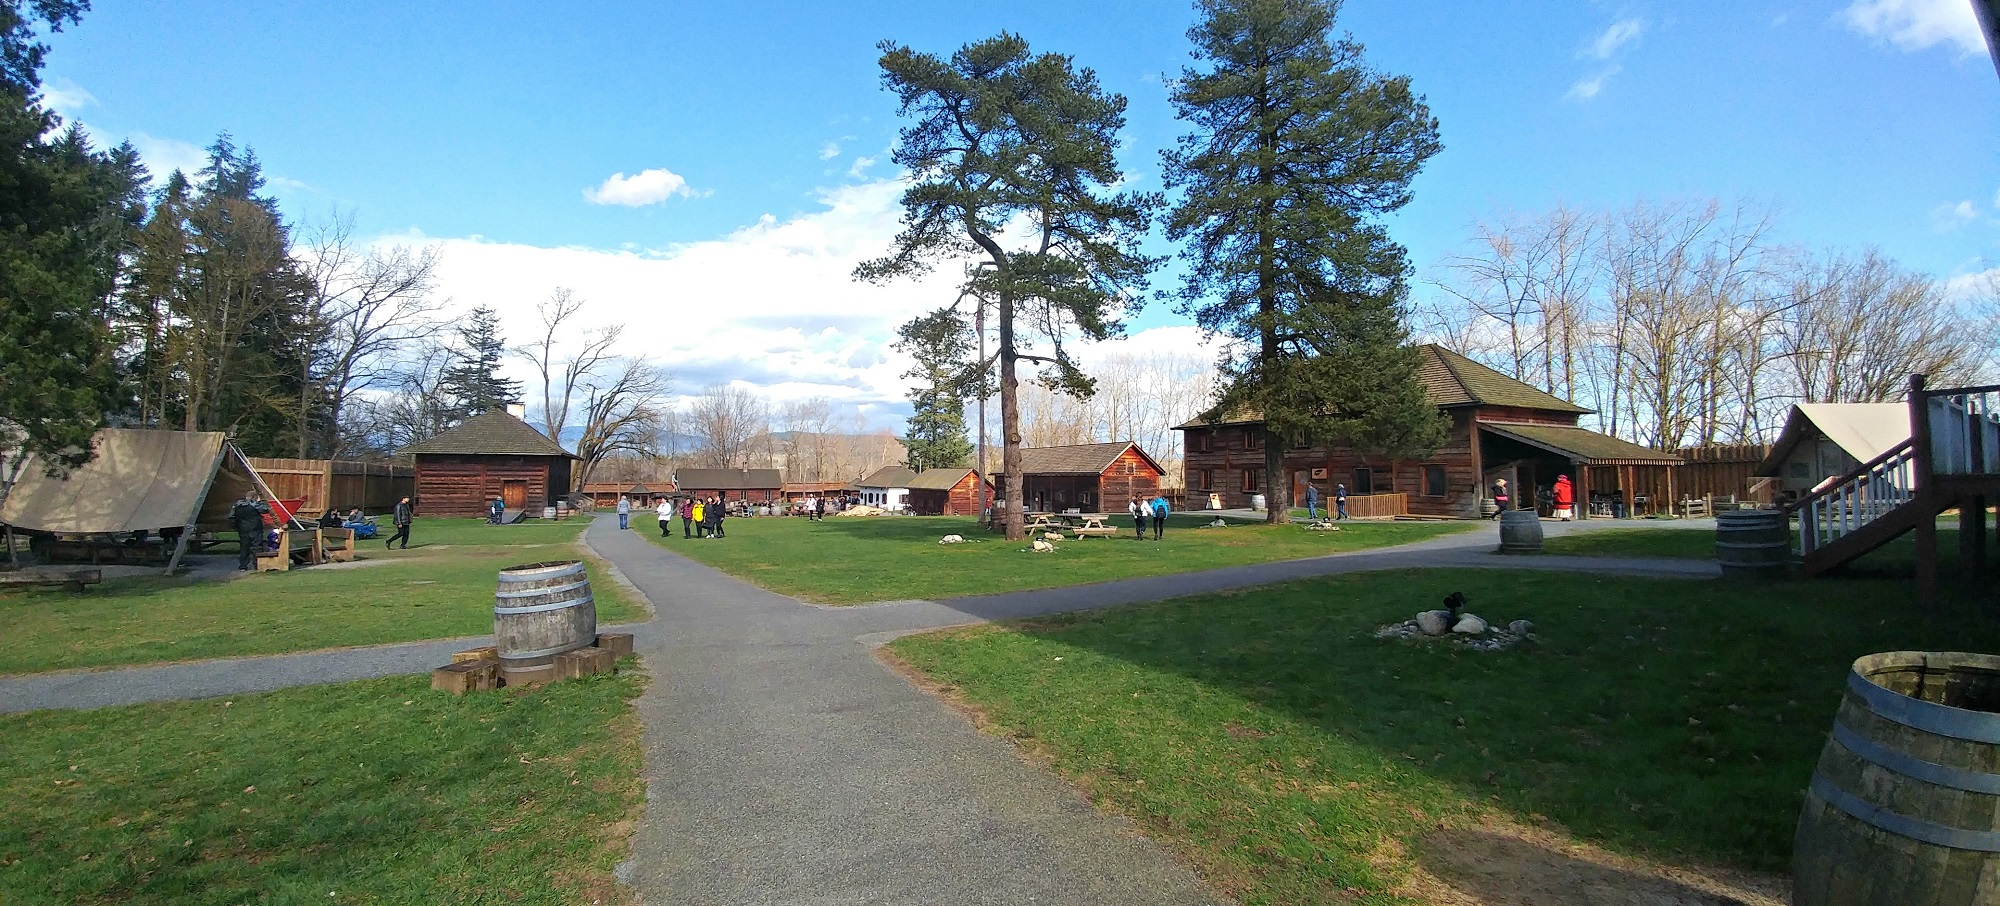 Fort Langley | Mighty Fraser Country | Vancouver, Coast and Mountains